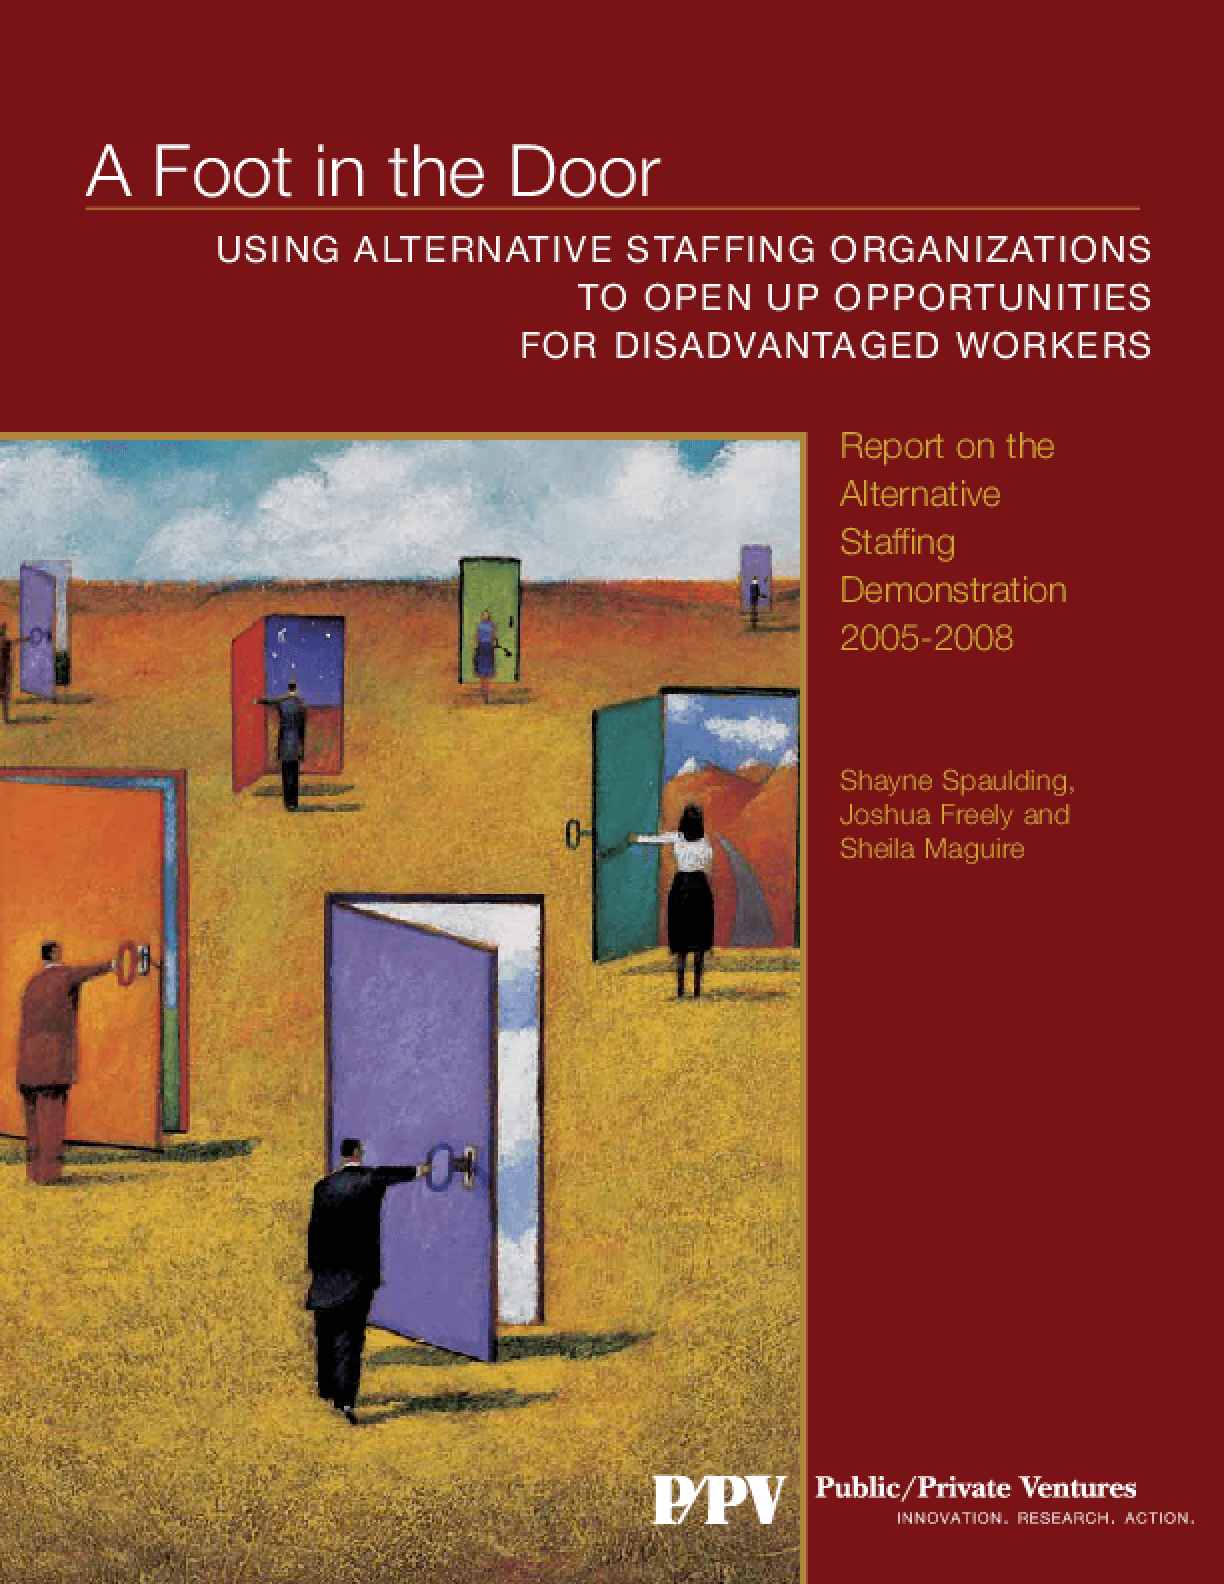 A Foot in the Door: Using Alternative Staffing Organizations to Open Up Opportunities for Disadvantaged Workers